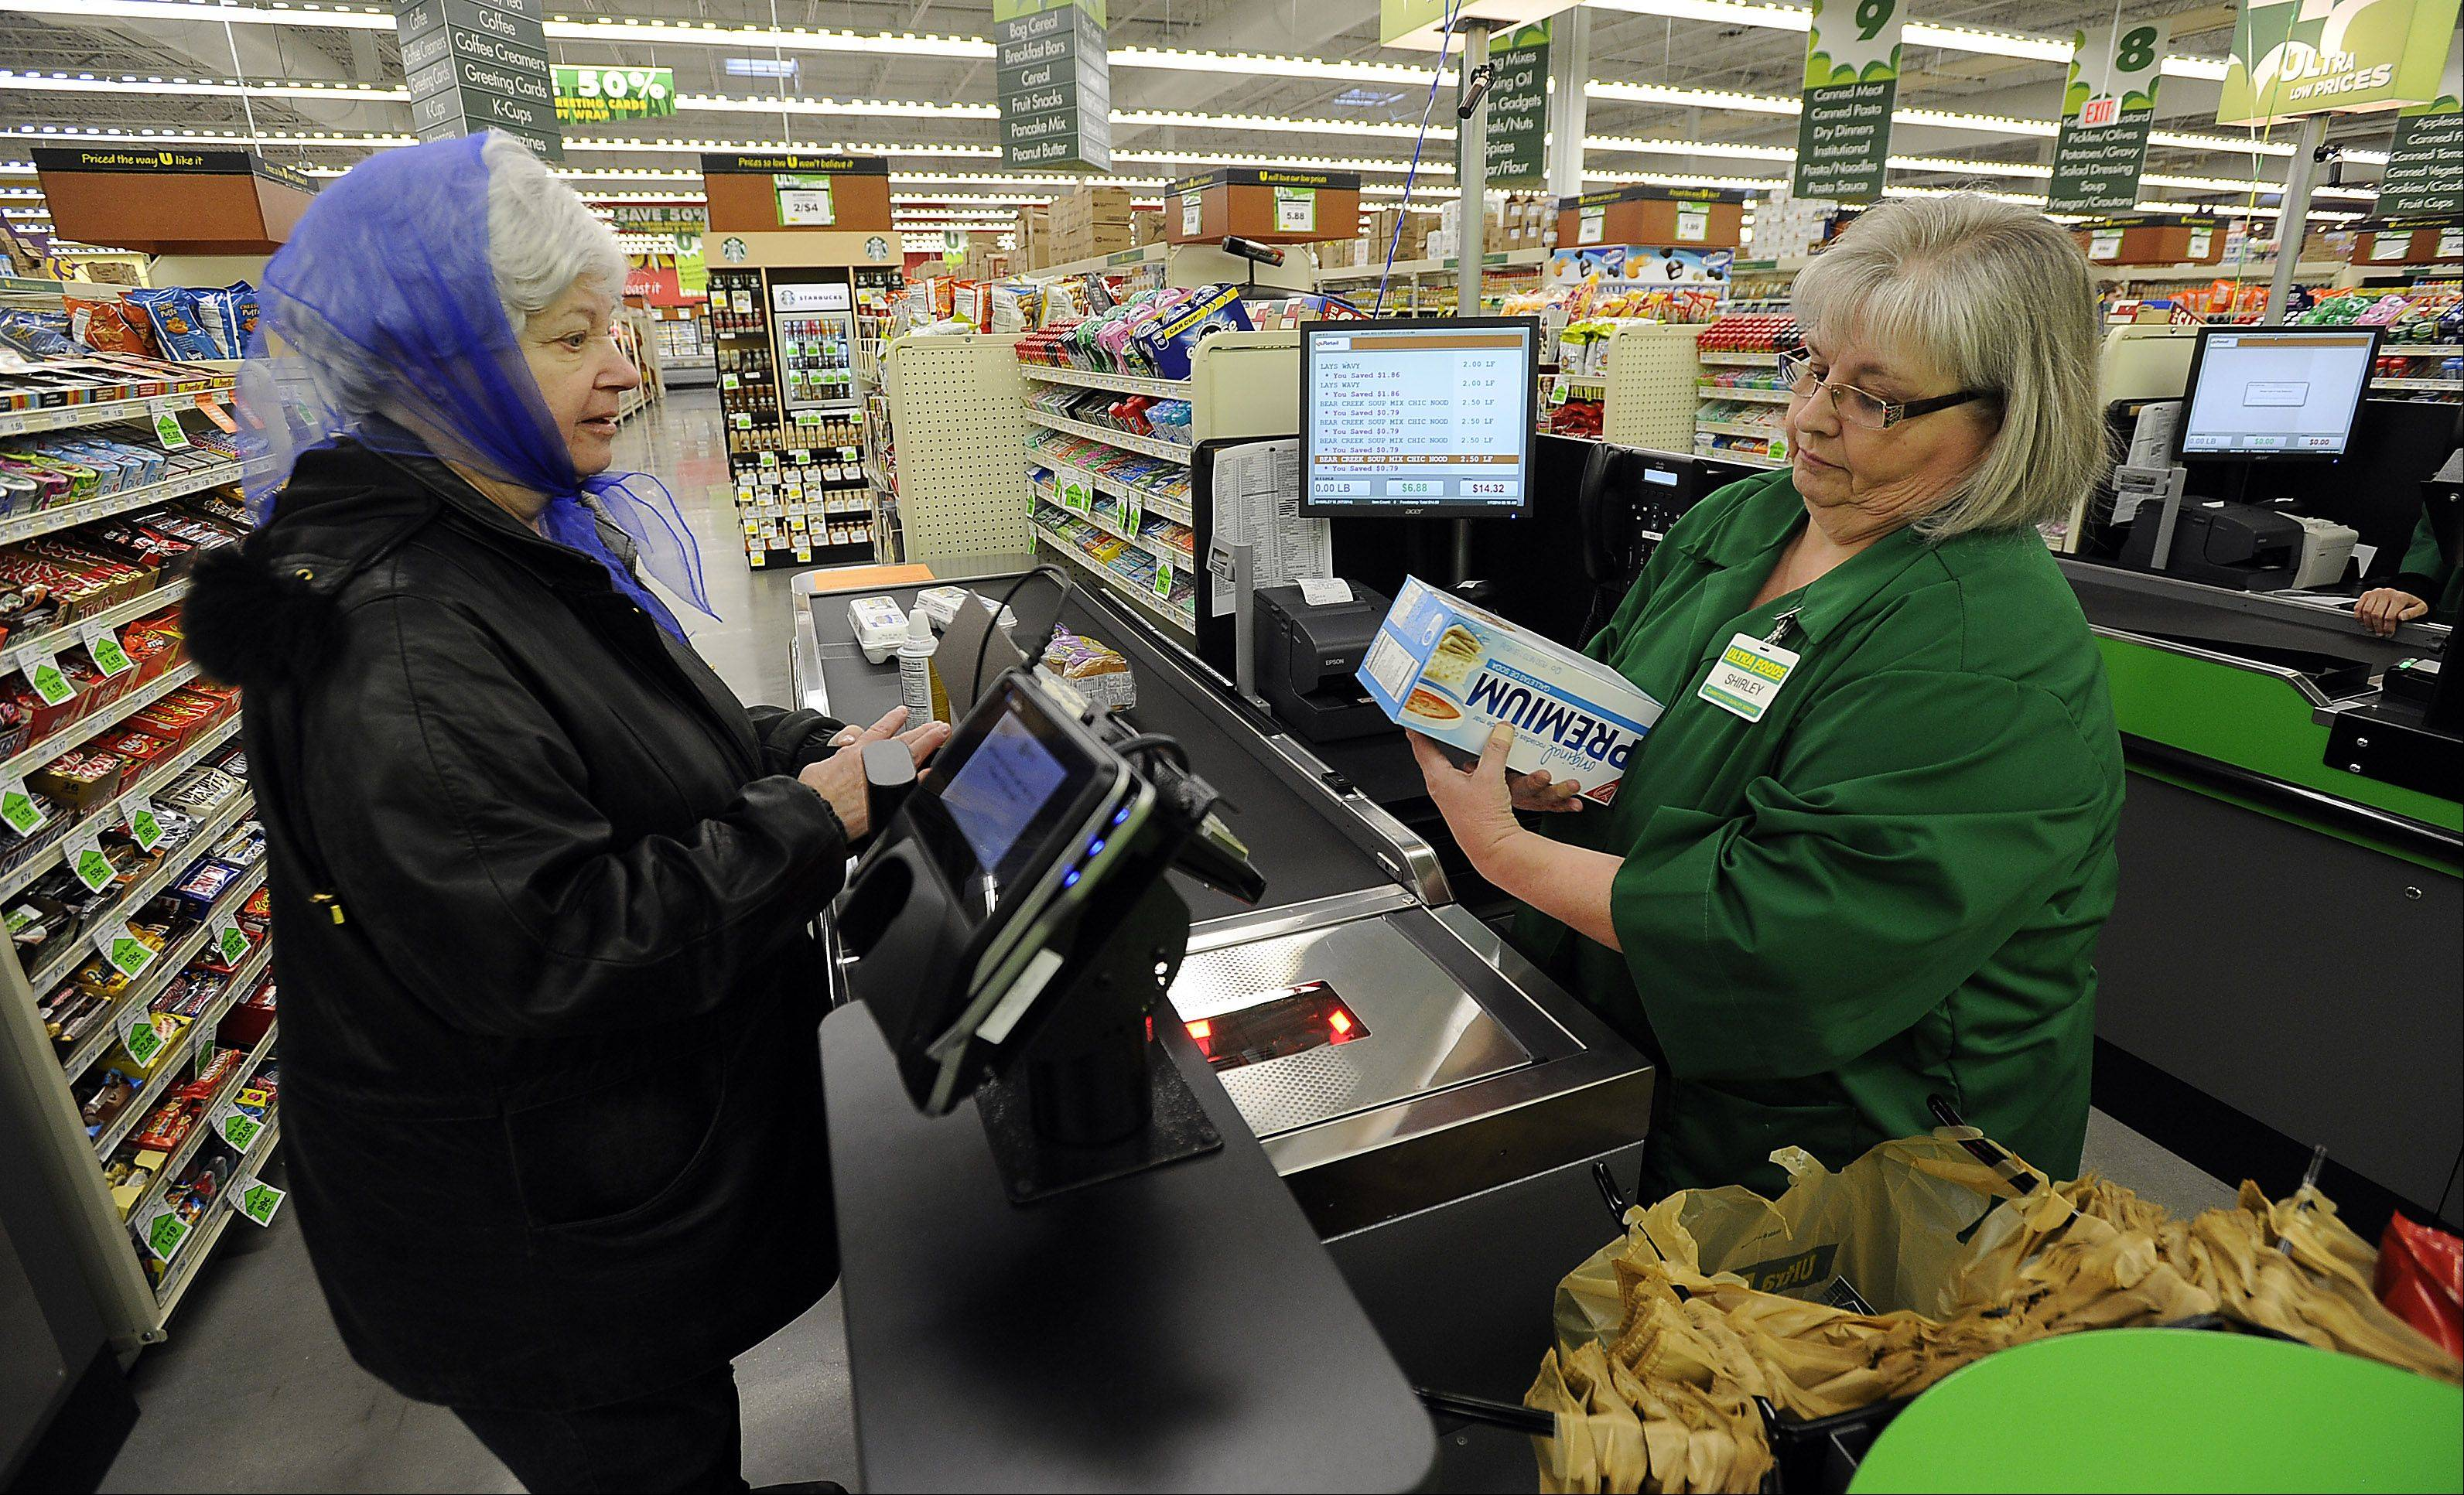 Pat Kennedy of Arlington Heights was the third customer through the checkout lane for clerk Shirley Whipple on the first day of the grand opening at Ultra Foods in Prospect Heights.